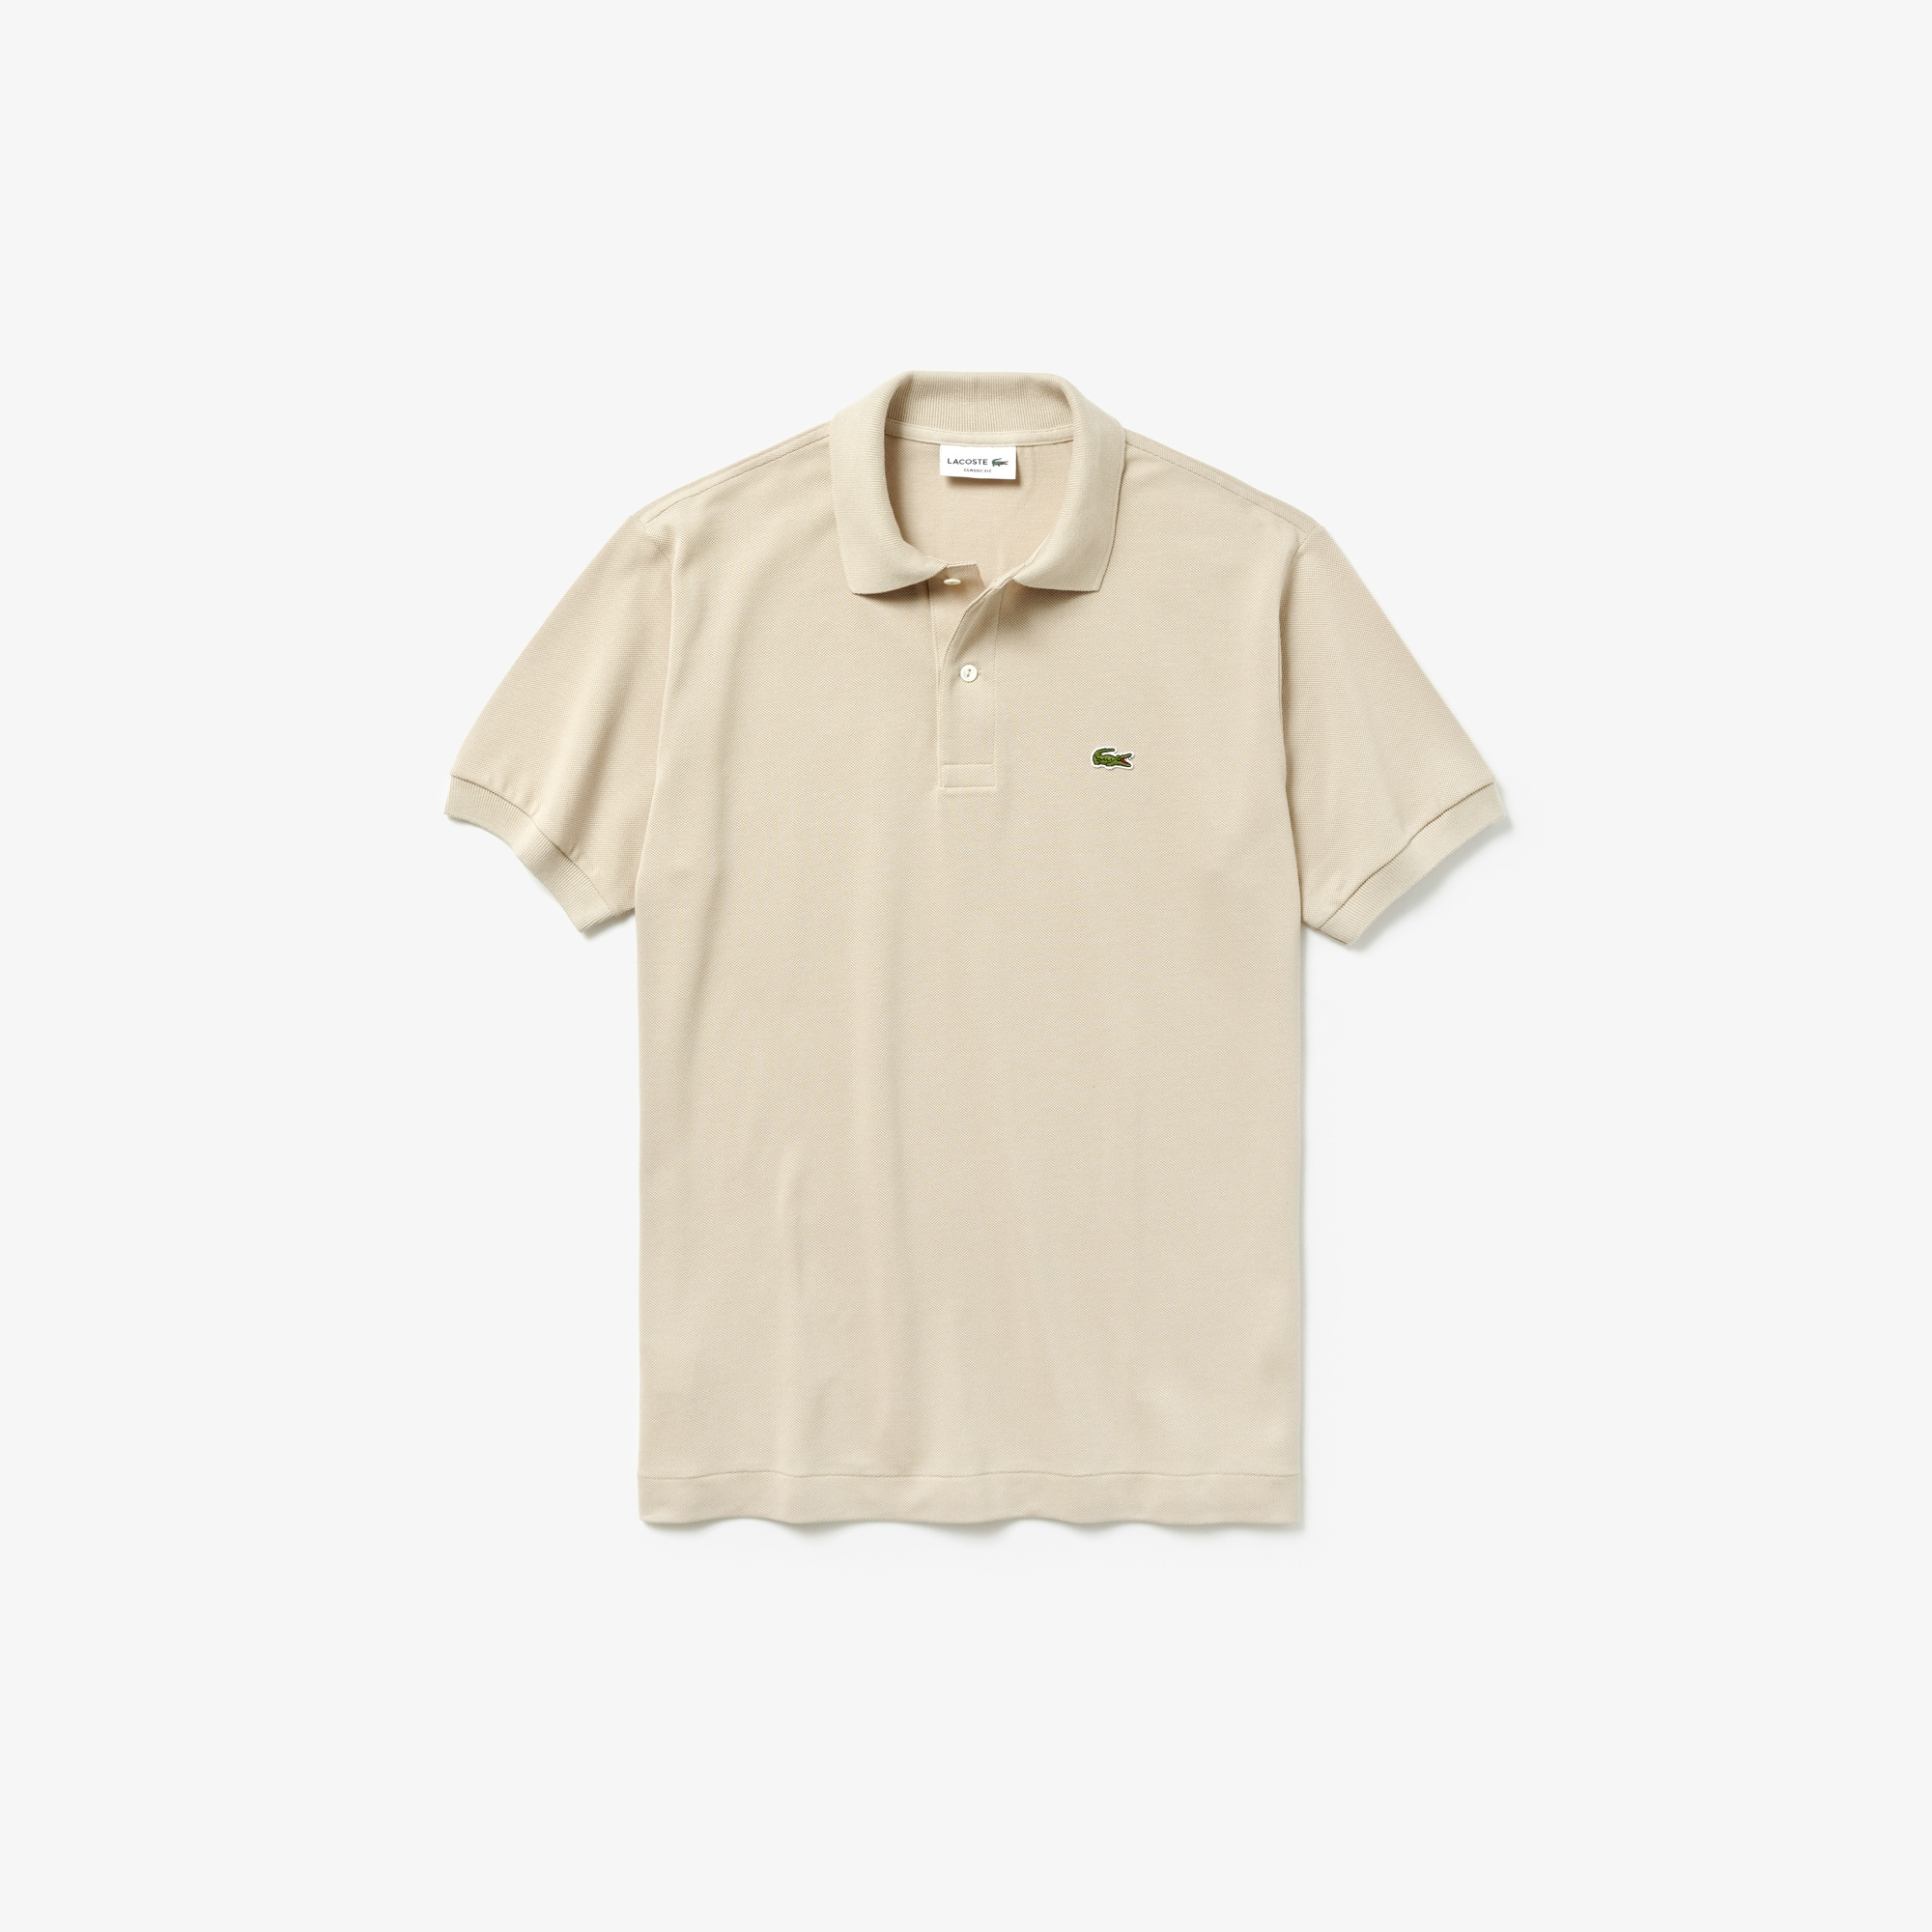 8227960832 Polo Et Polos Manches Courtes Lacoste Homme Longues xA4qxwFHS